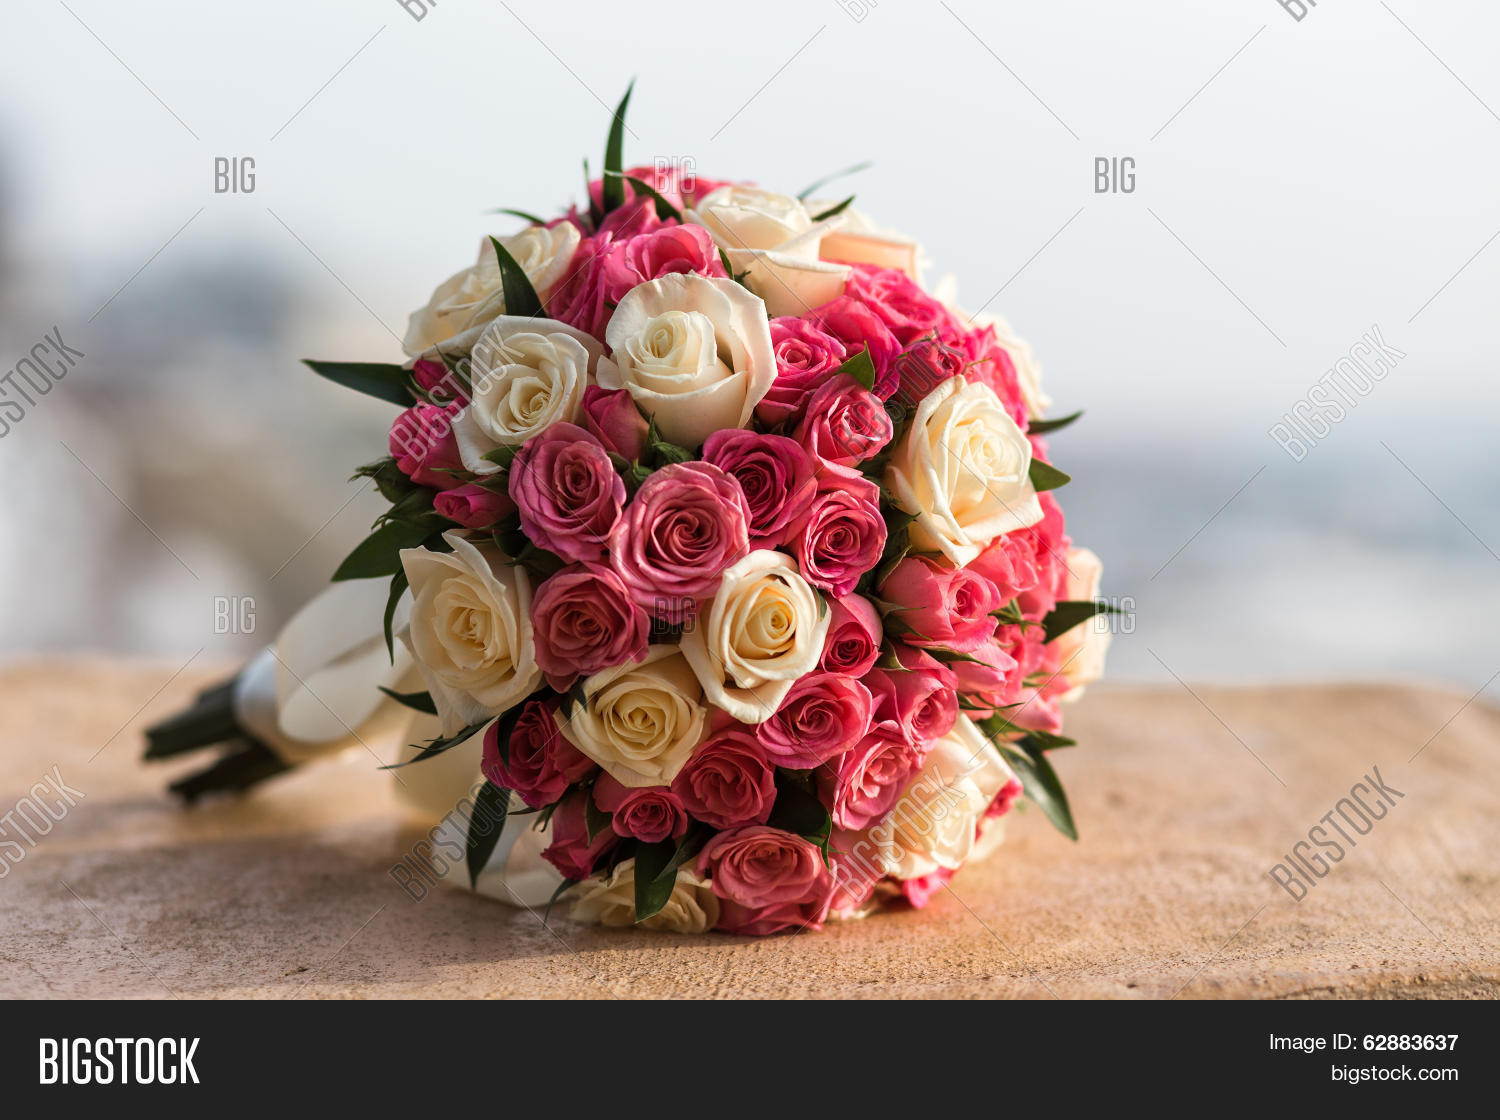 Wedding Bouquet Red Image Photo Free Trial Bigstock